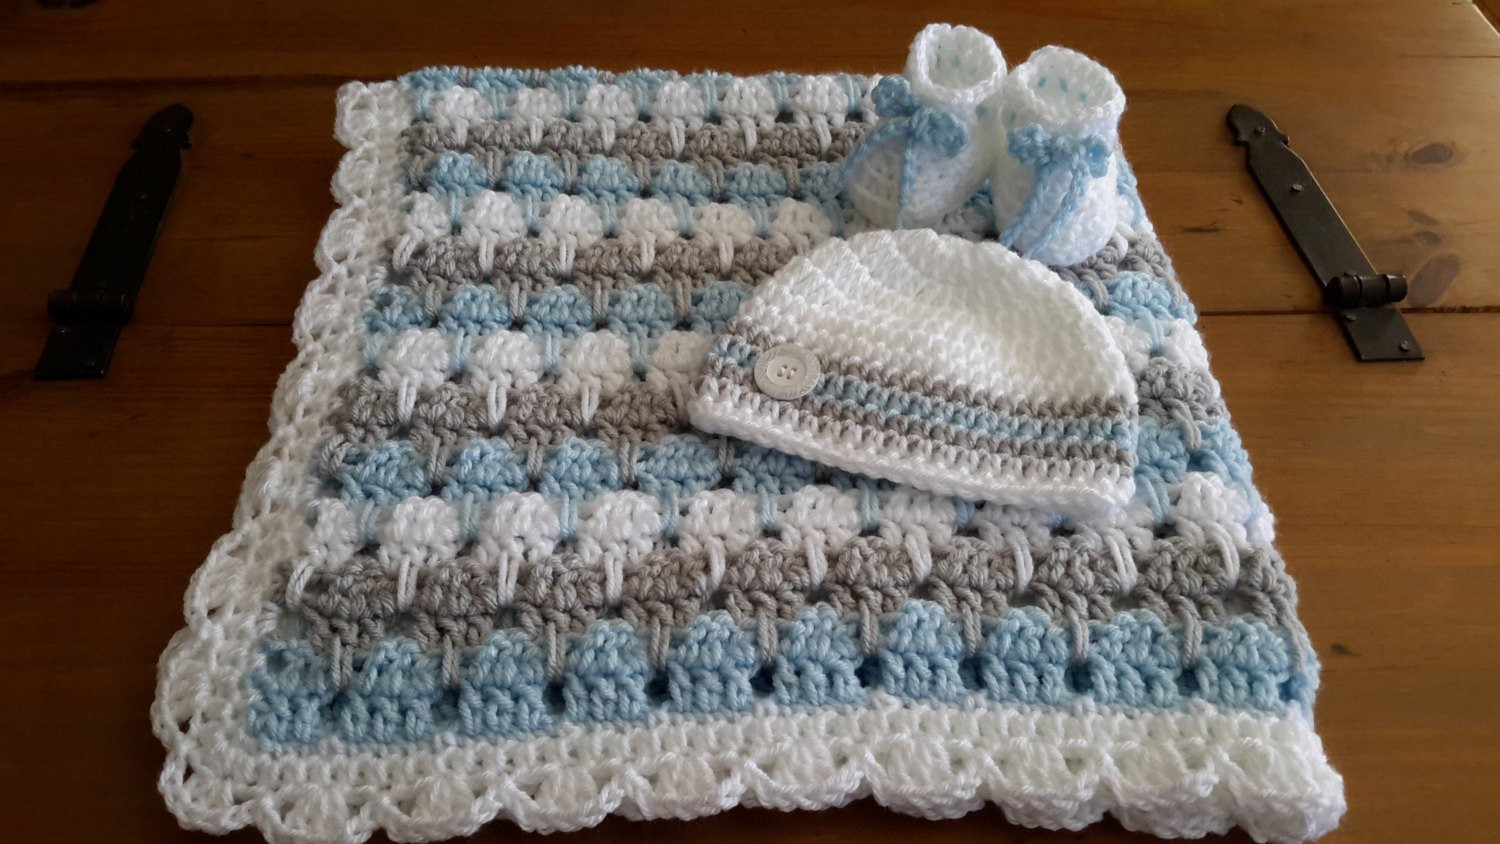 Baby Boy Crochet Blanket Patterns Lovely Baby Boy Blanket Crochet Stripe Crochet Blanket Afghan Of Baby Boy Crochet Blanket Patterns Best Of 17 Best Images About Cute Cuddly Blankets On Pinterest